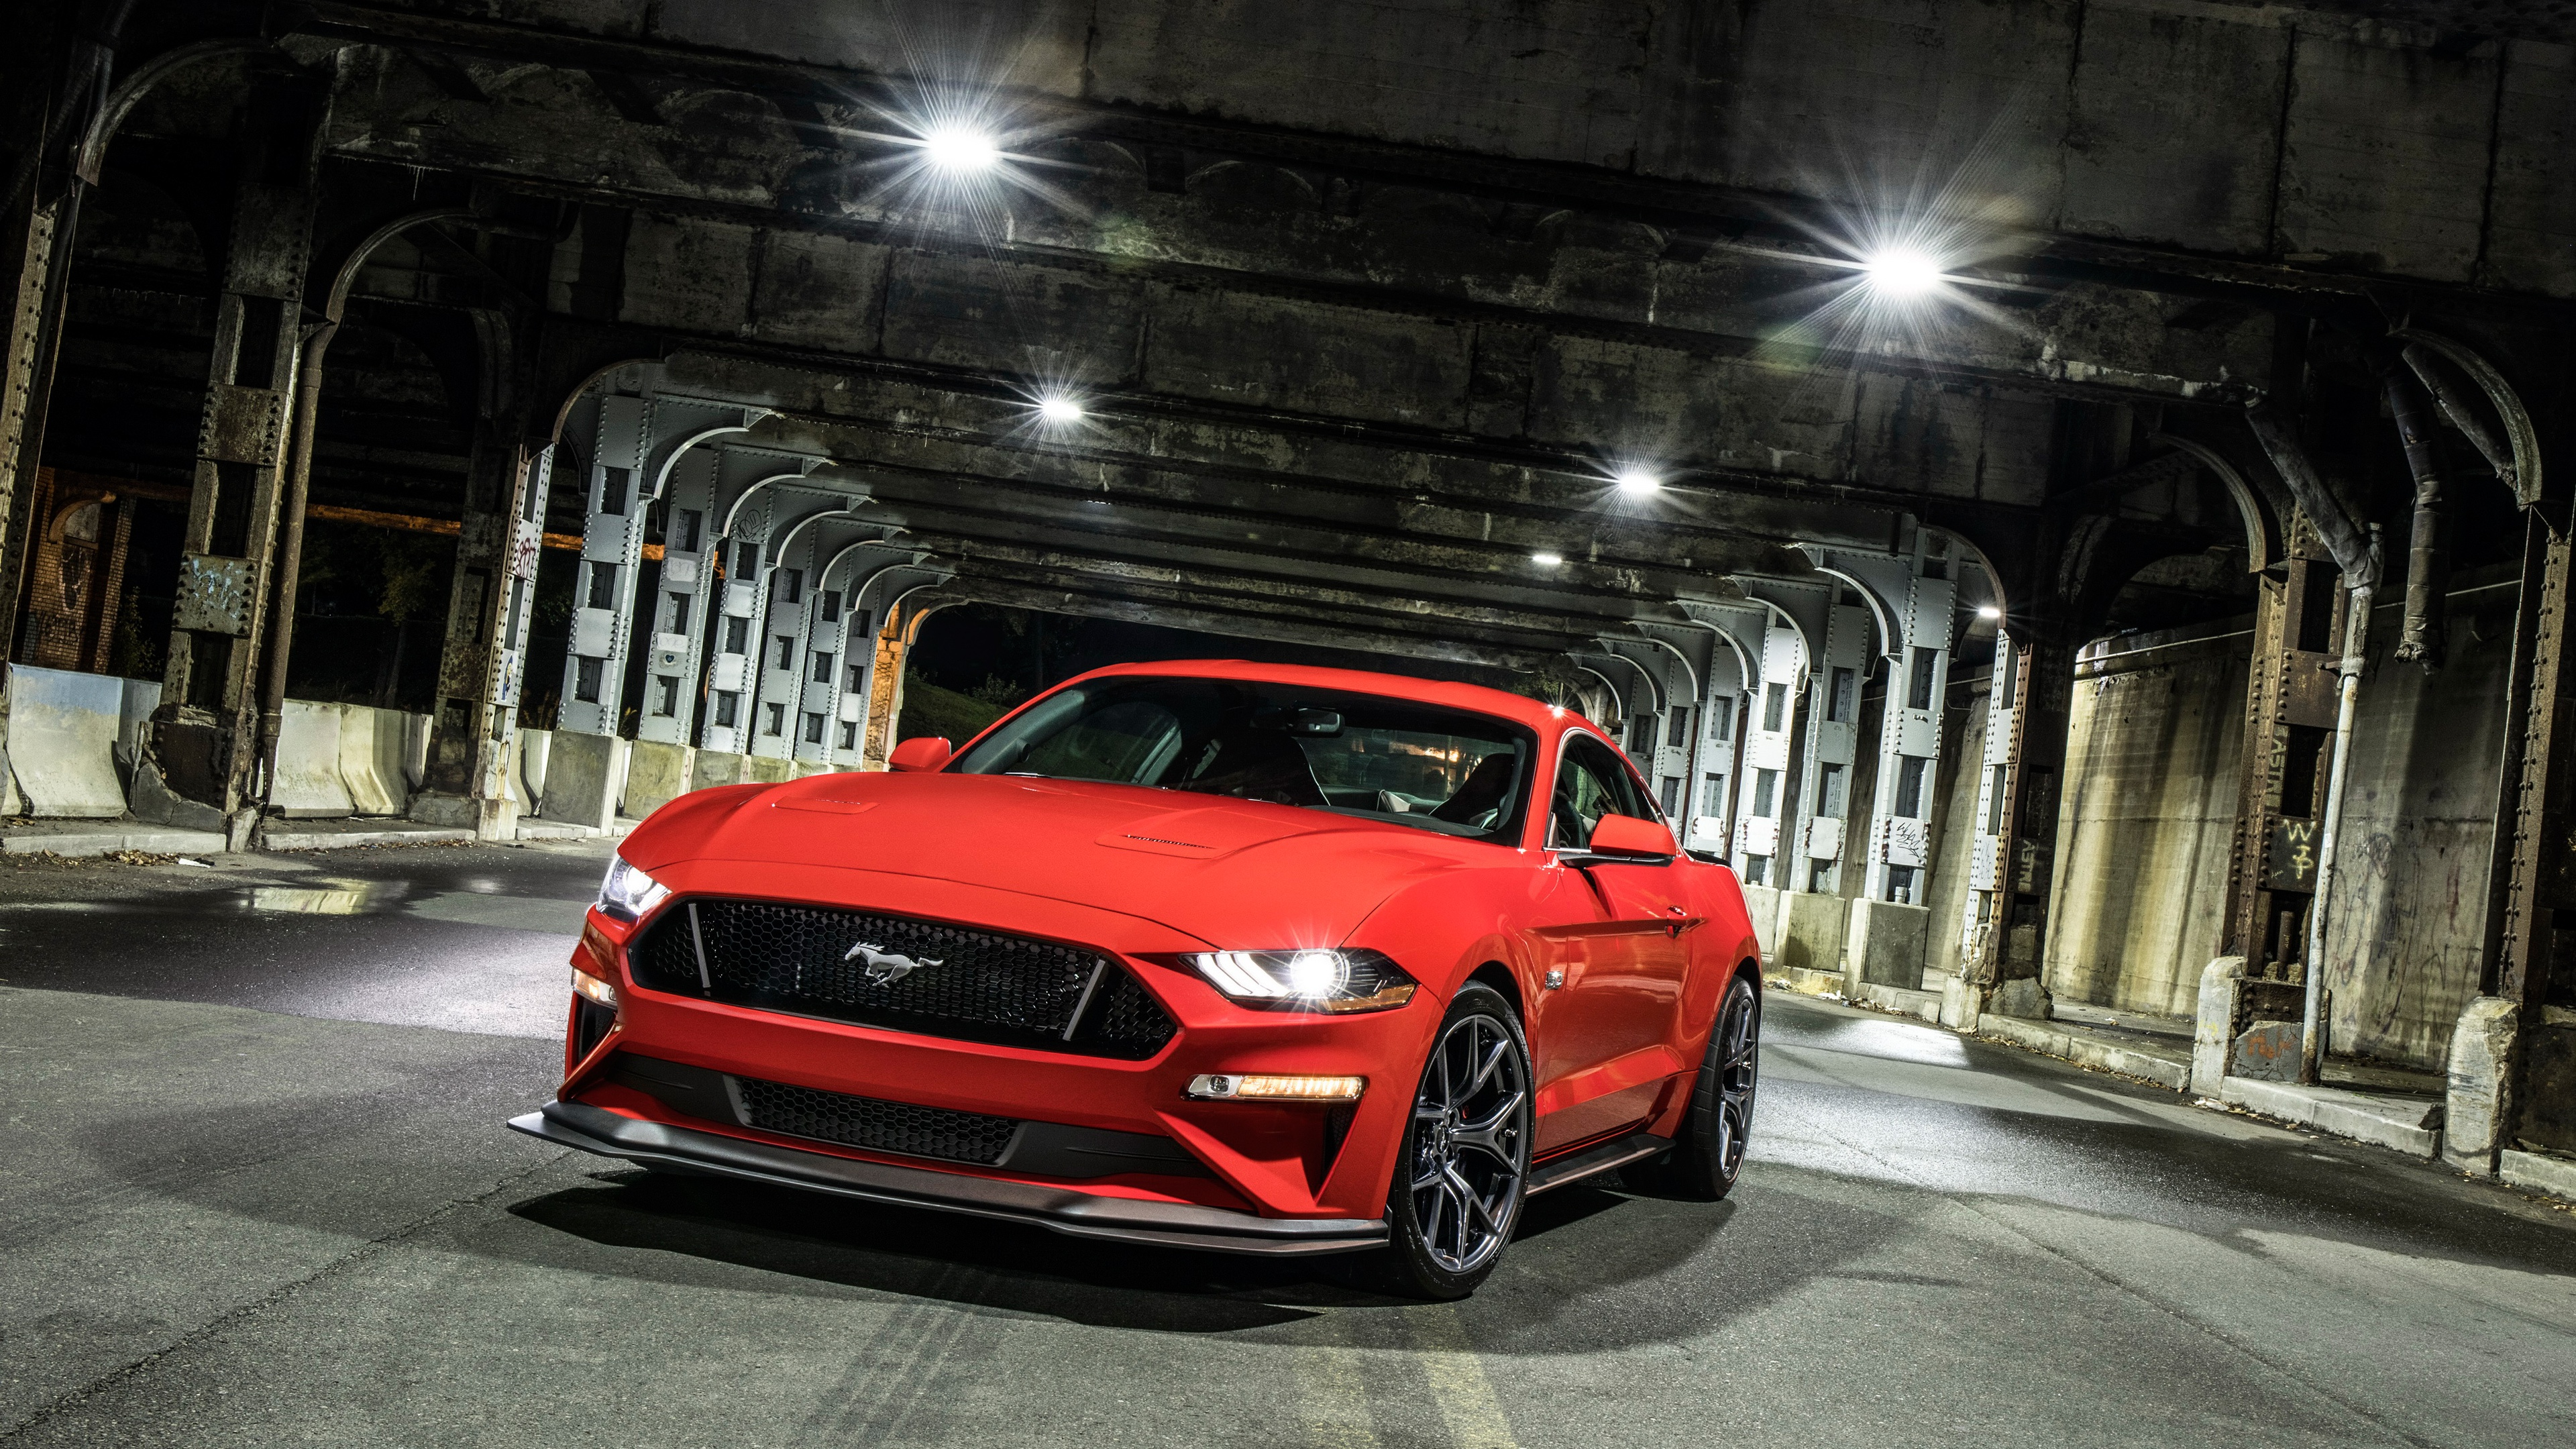 54 ford mustang gt hd wallpapers | background images - wallpaper abyss